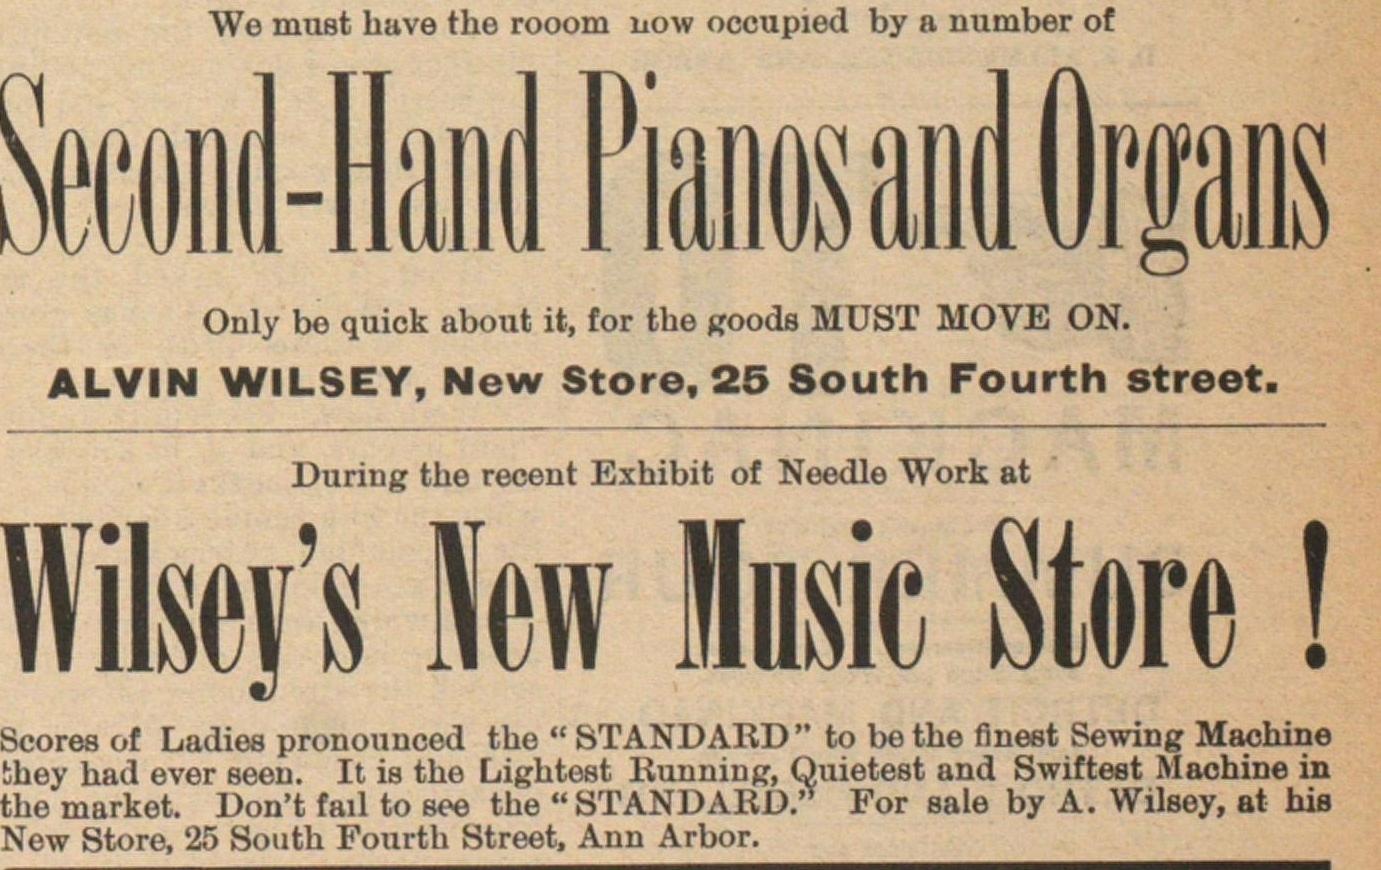 Second-hand Pianos And Organs image